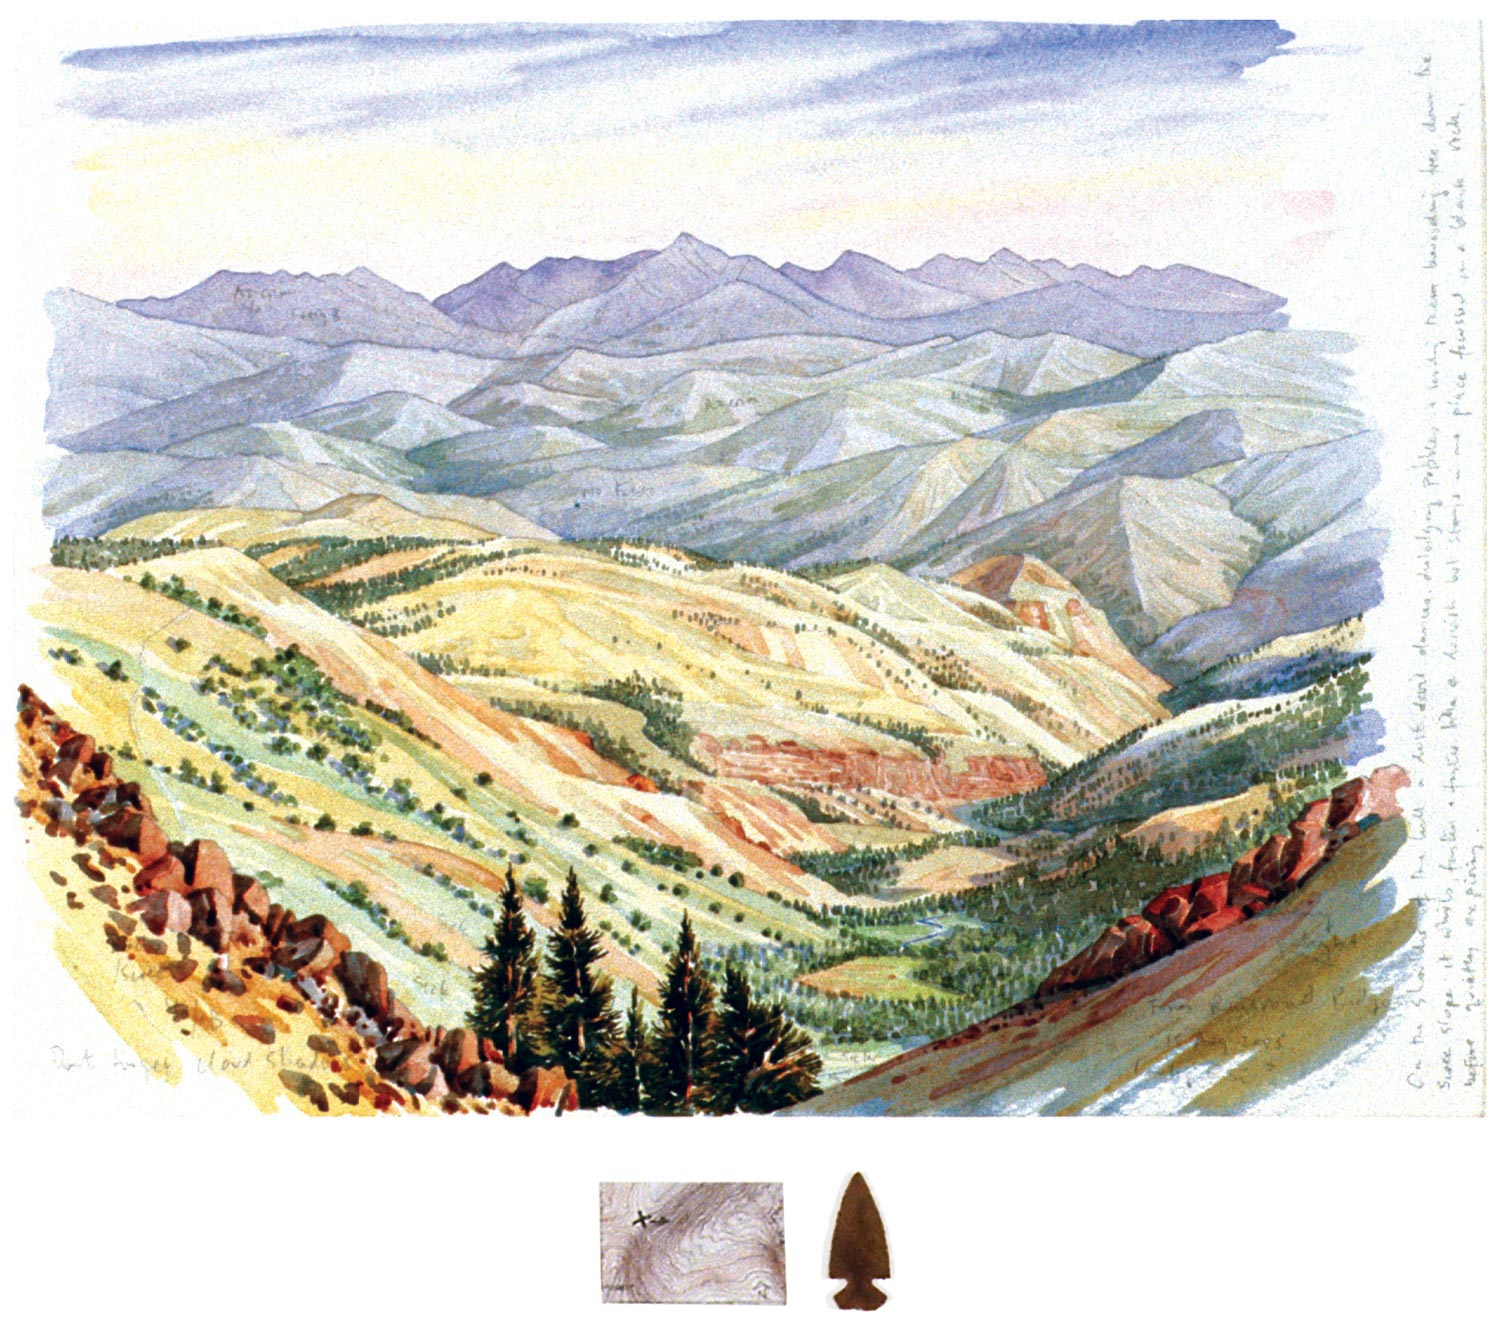 Tony Foster,  Looking East from Railroad Ridge , 2005 | Watercolor and graphite on paper, mixed media | 12 x 15 3/4 in. / 1 1/2 x 3 1/8 in. | 2006.1.3